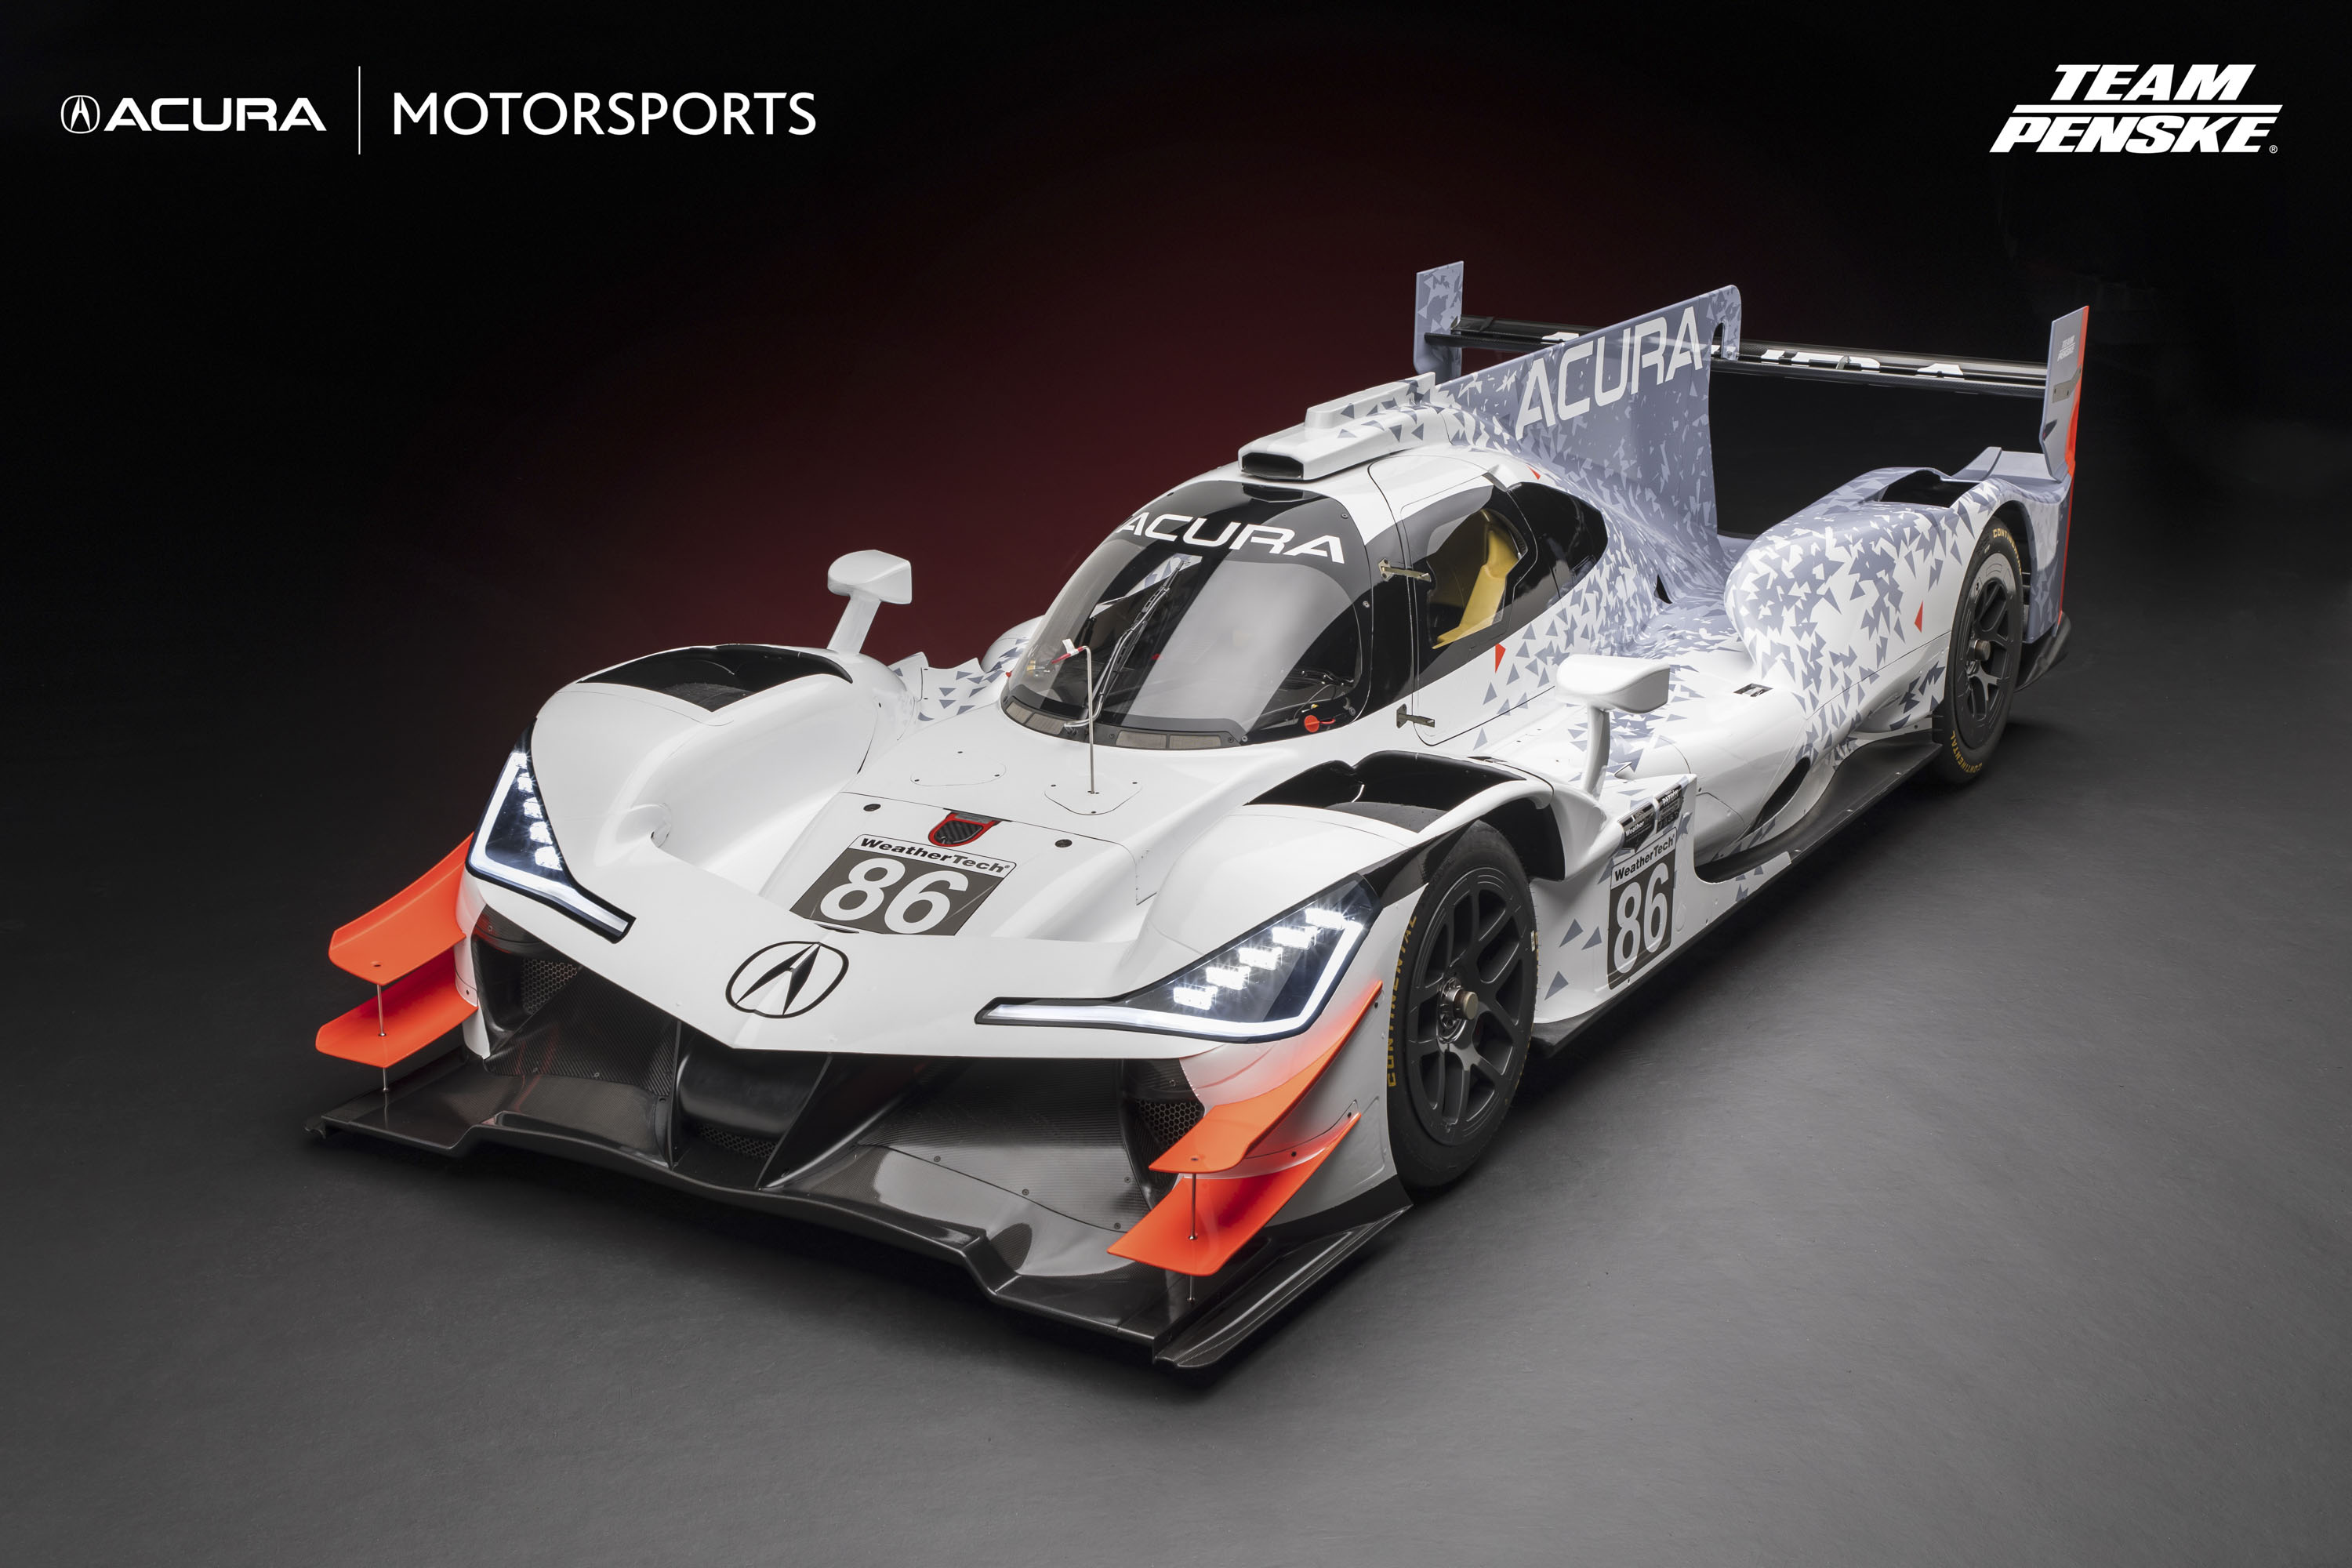 2018 Acura Arx 05 Dpi Review Top Speed